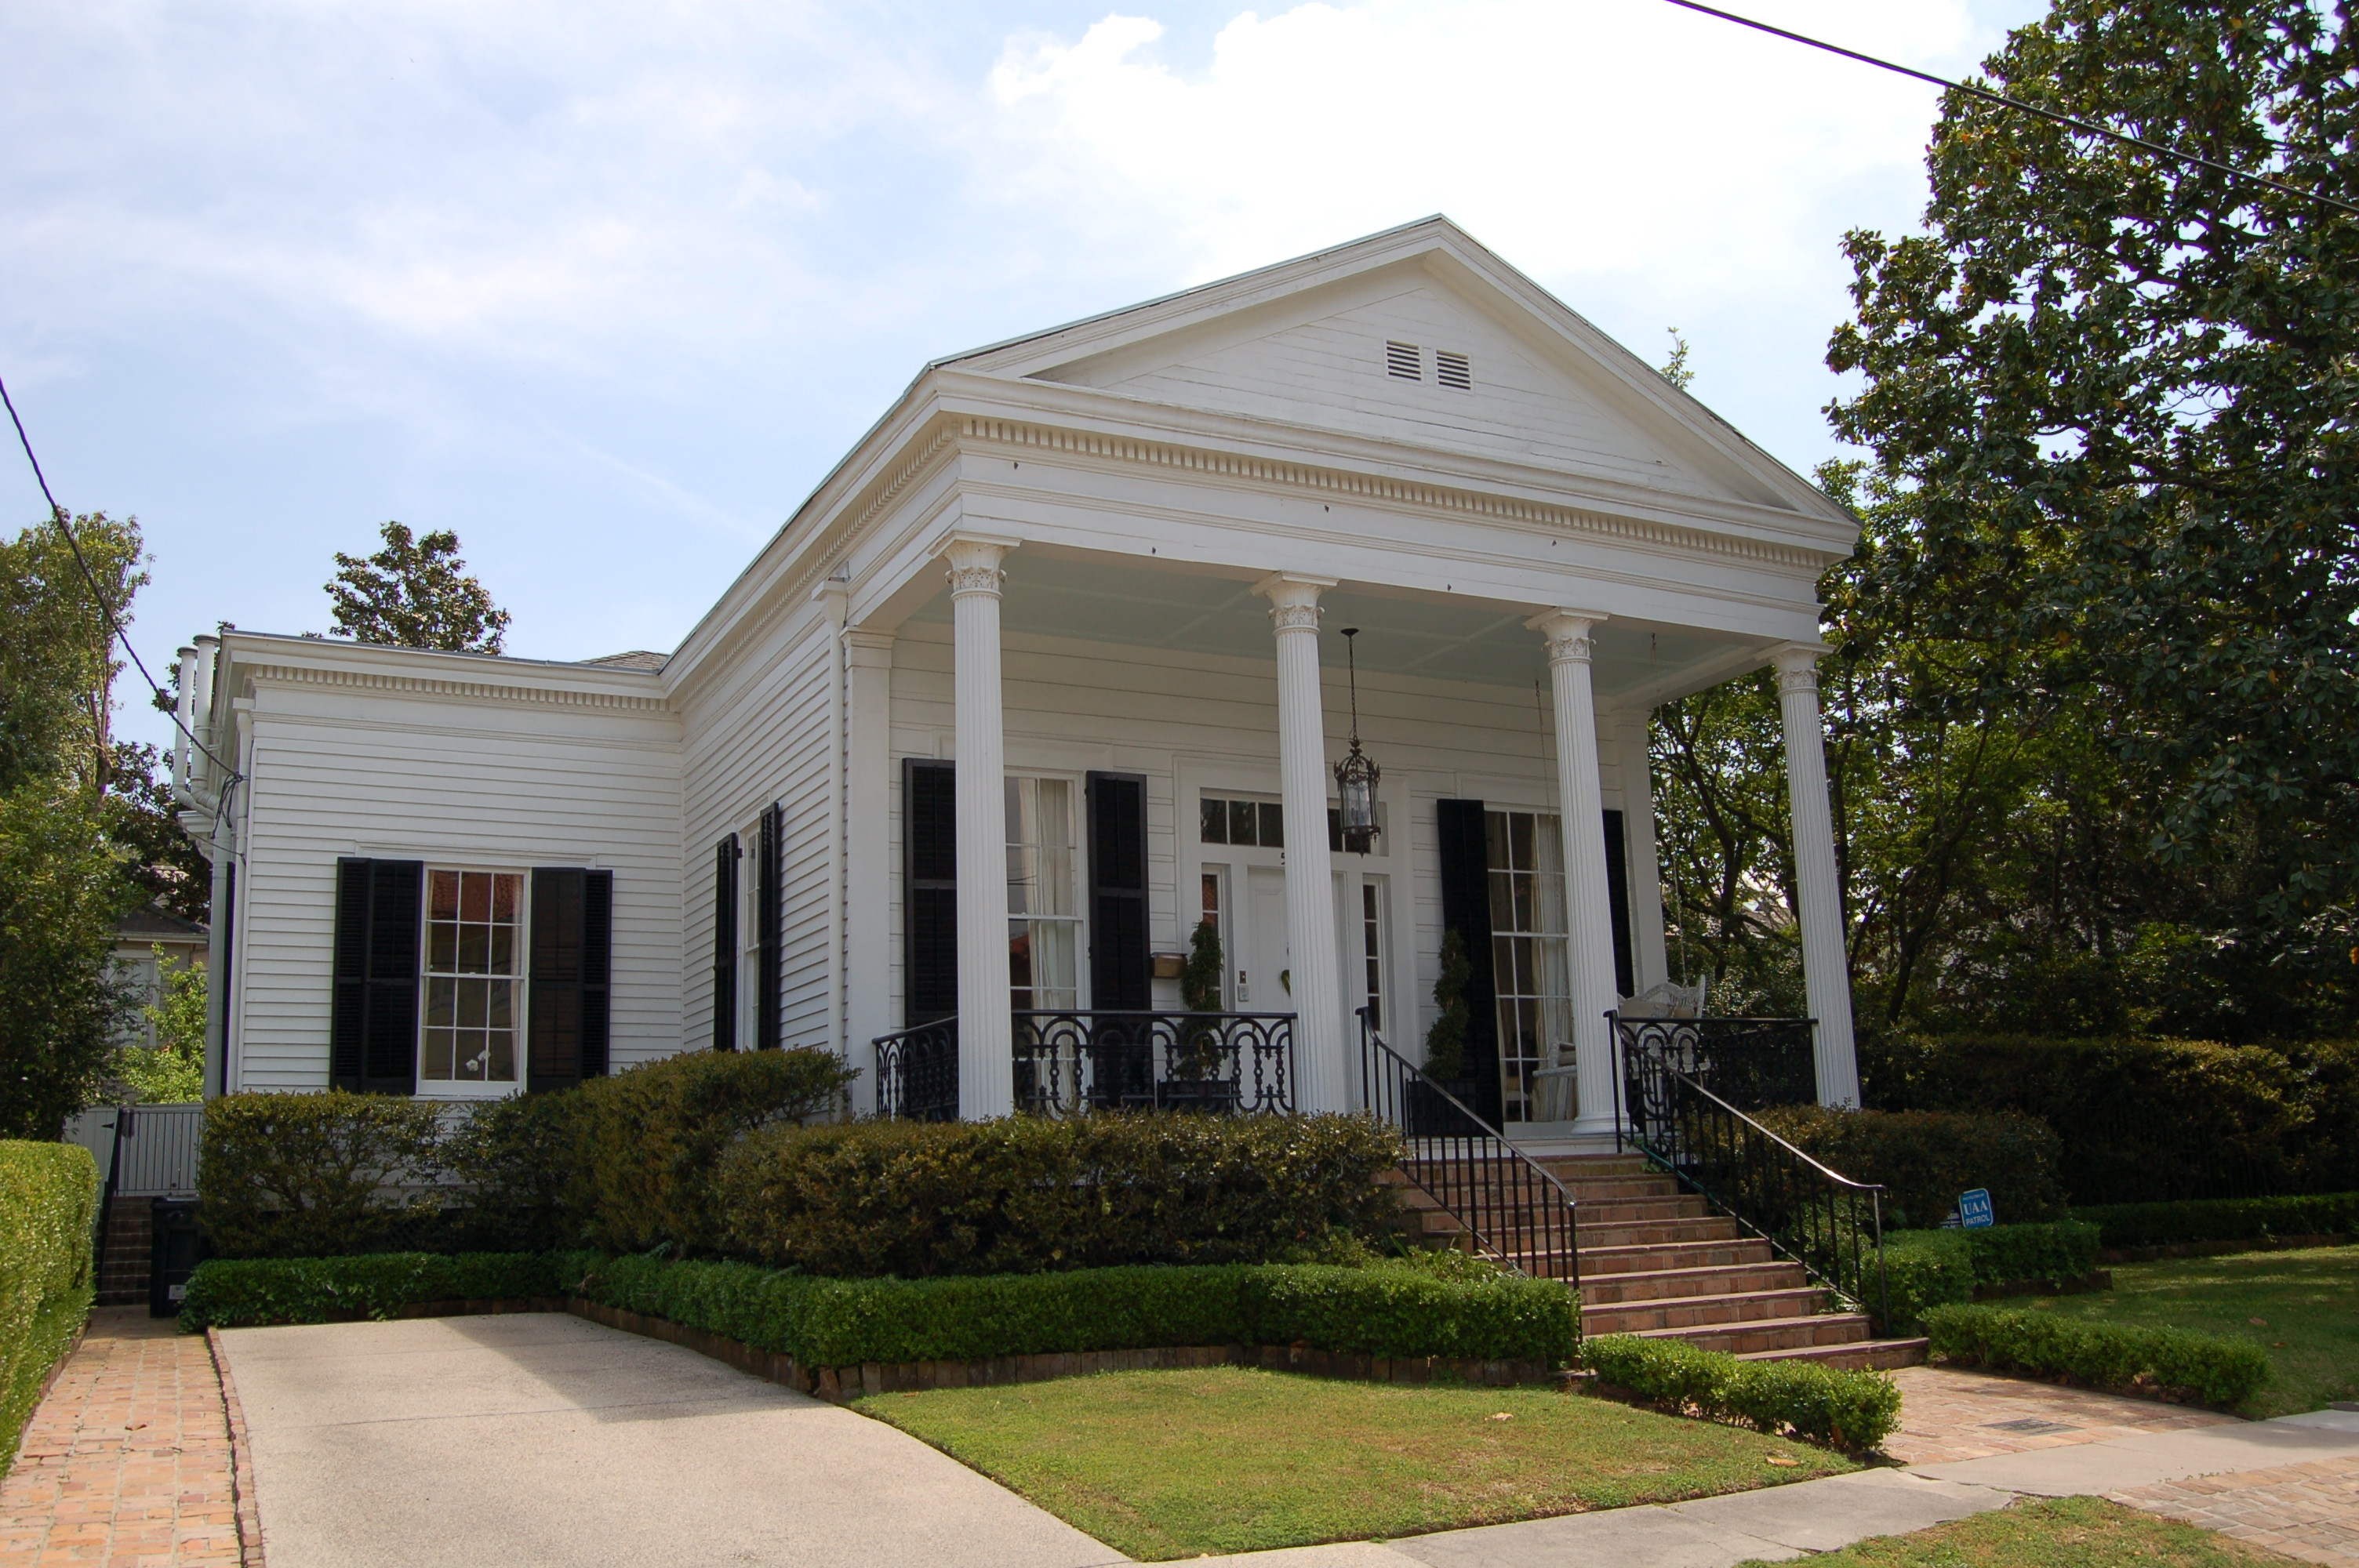 The James H. Dillard House was built sometime in the 19th century.